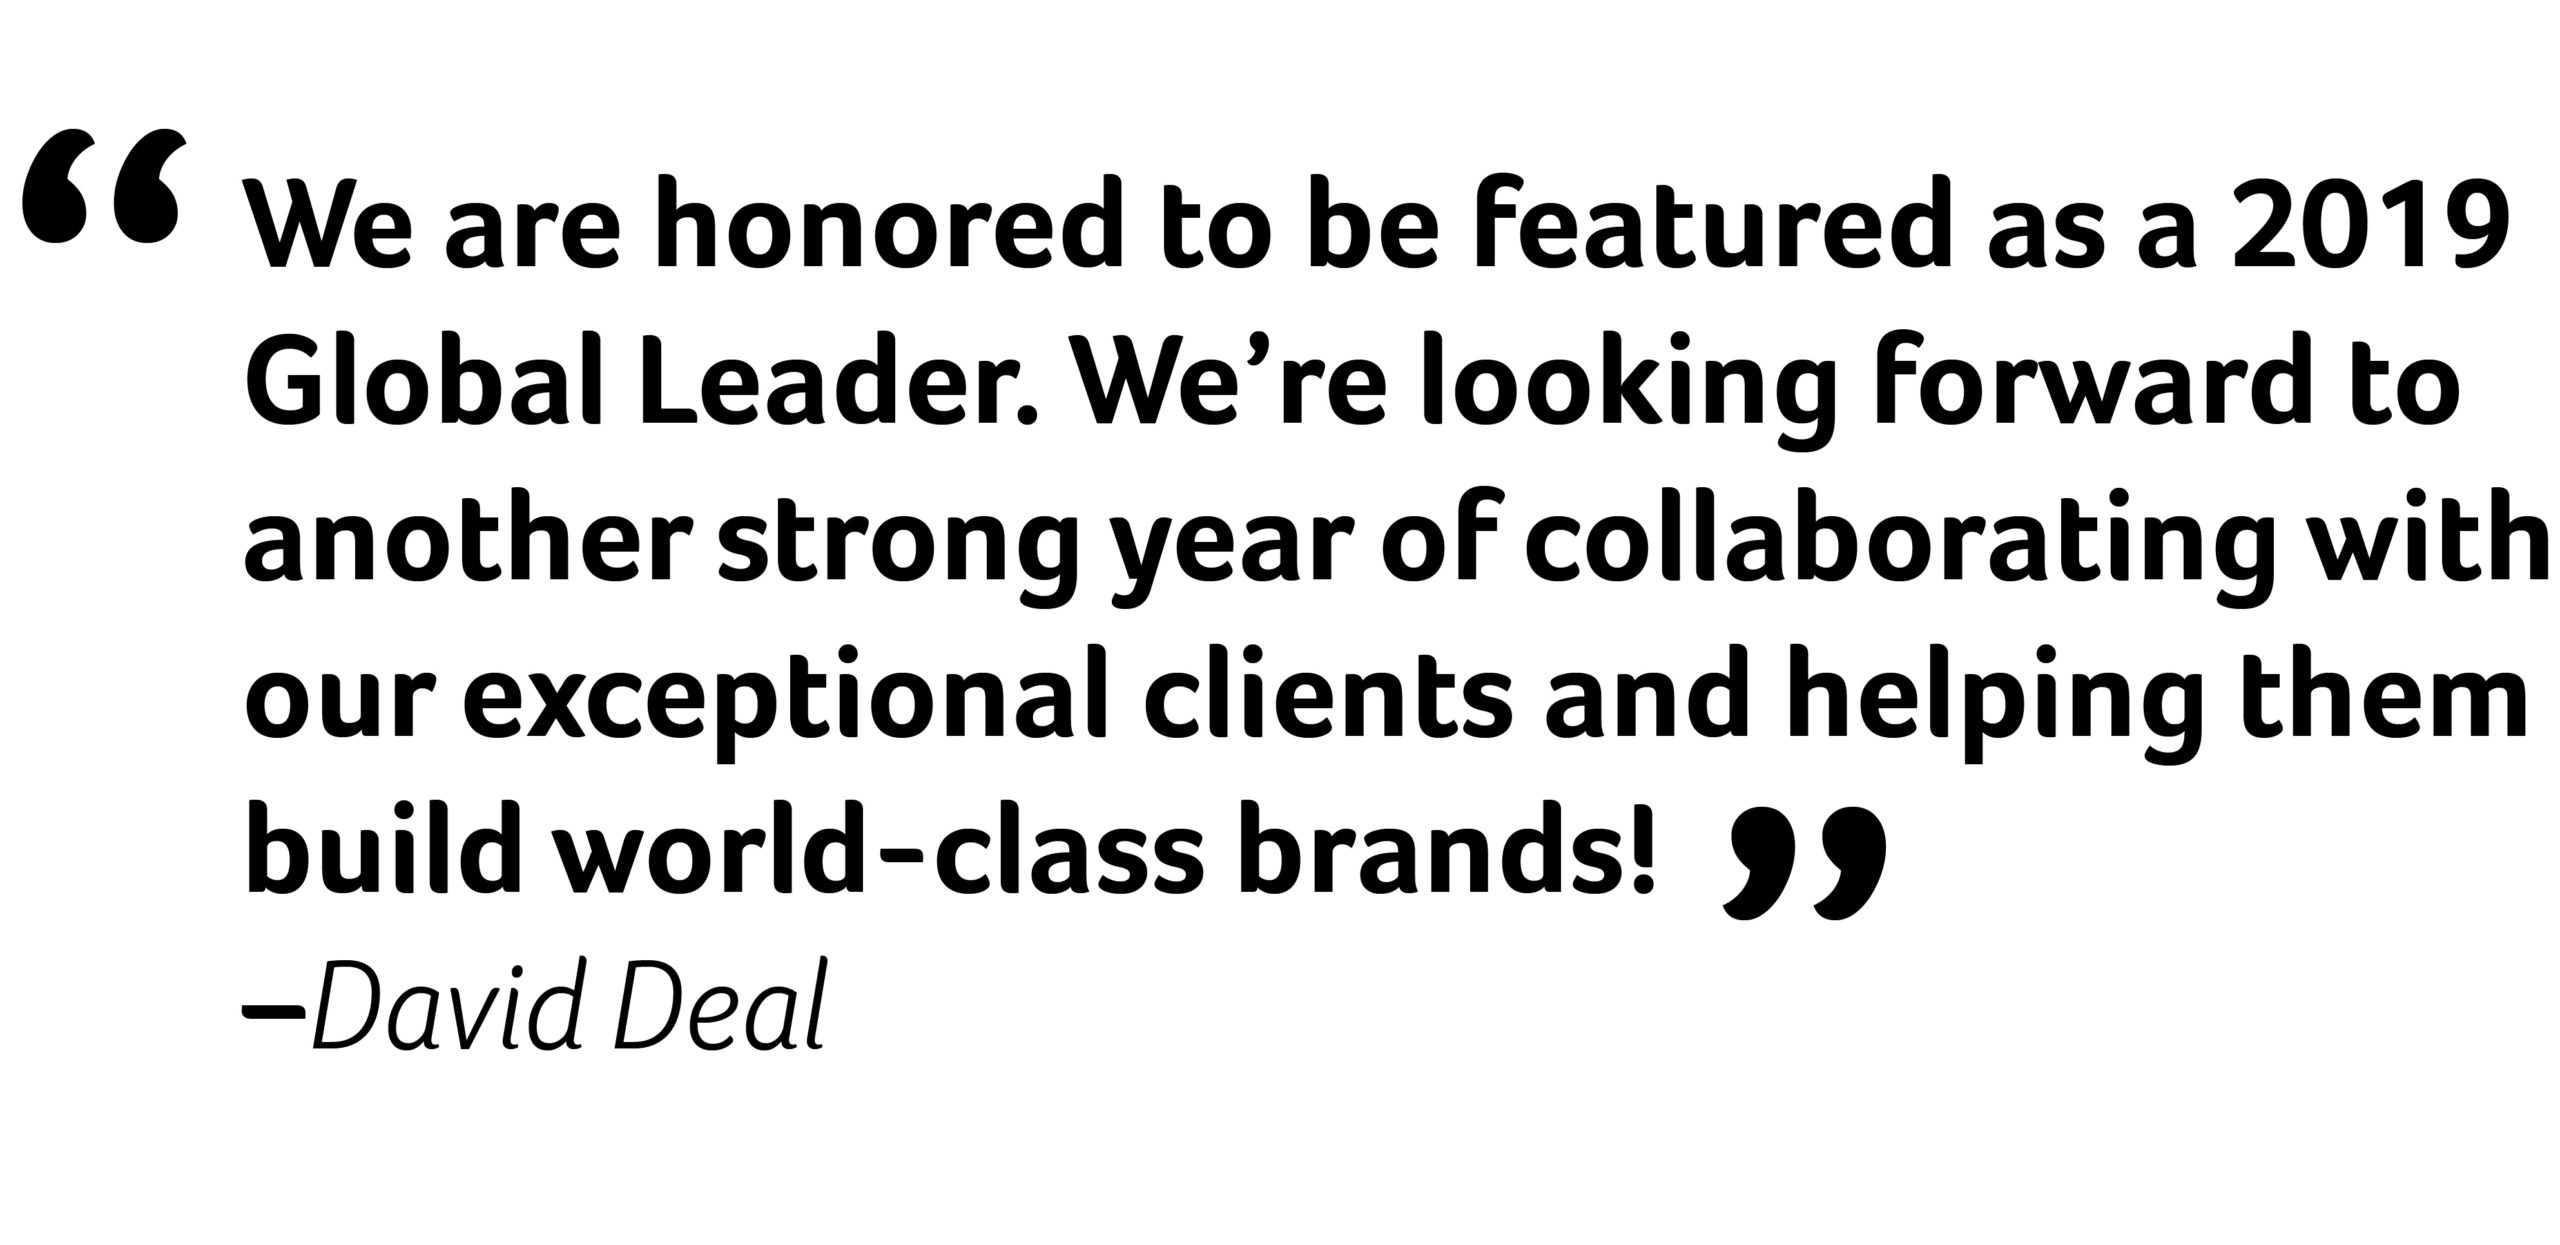 """We are honored to be featured as a 2019 Global Leader. We're looking forward to another strong year of collaborating with our exceptional clients and helping them build world-class brands!"" David Deal"